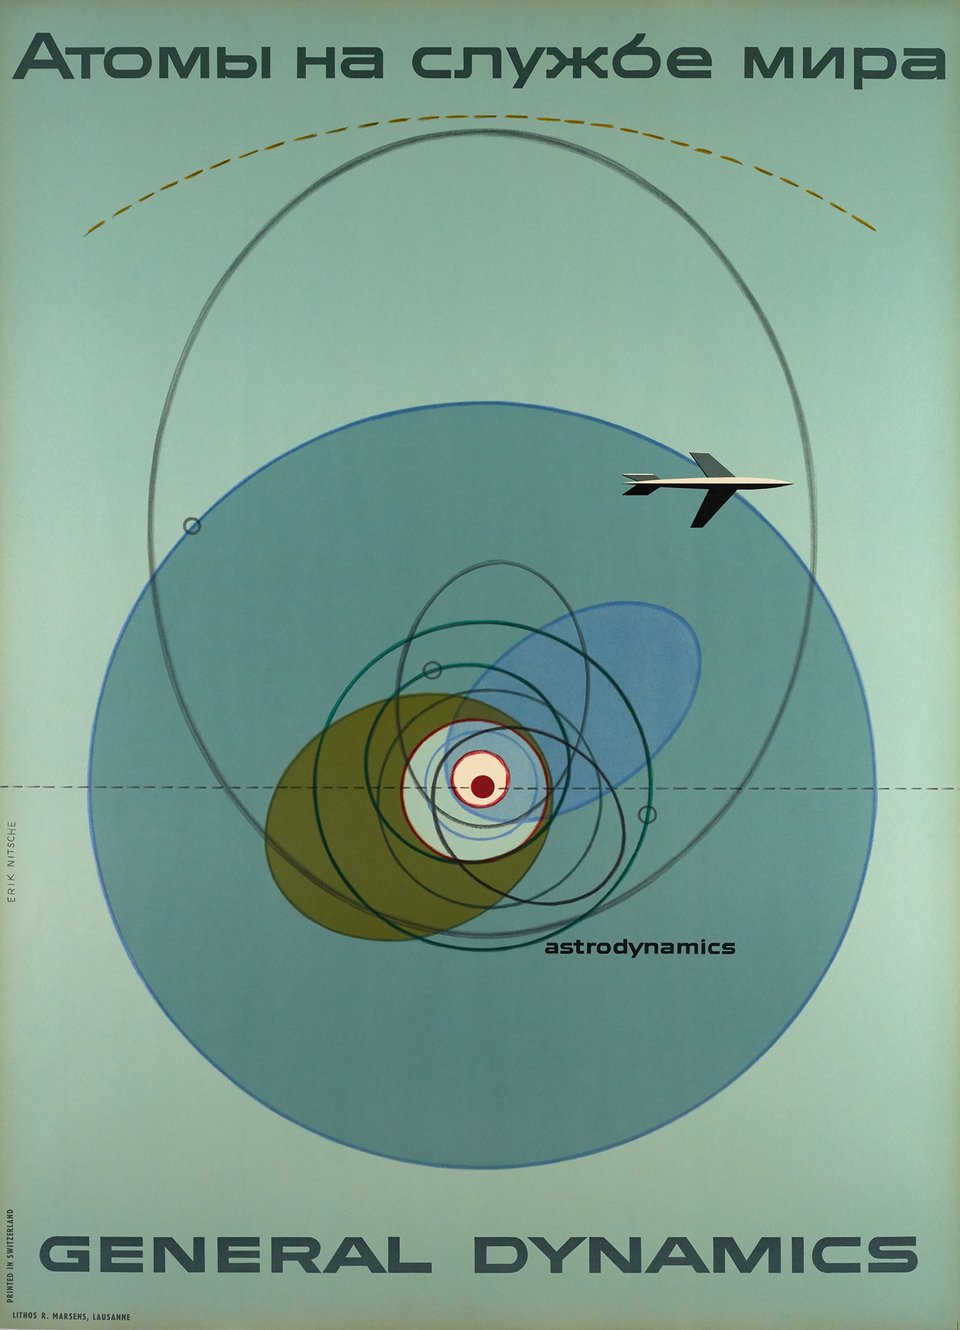 General Dynamics, Атомы на служнбе мира, Astrodynamics, Atoms for peace – Affiche ancienne – Erik NITSCHE – 1955